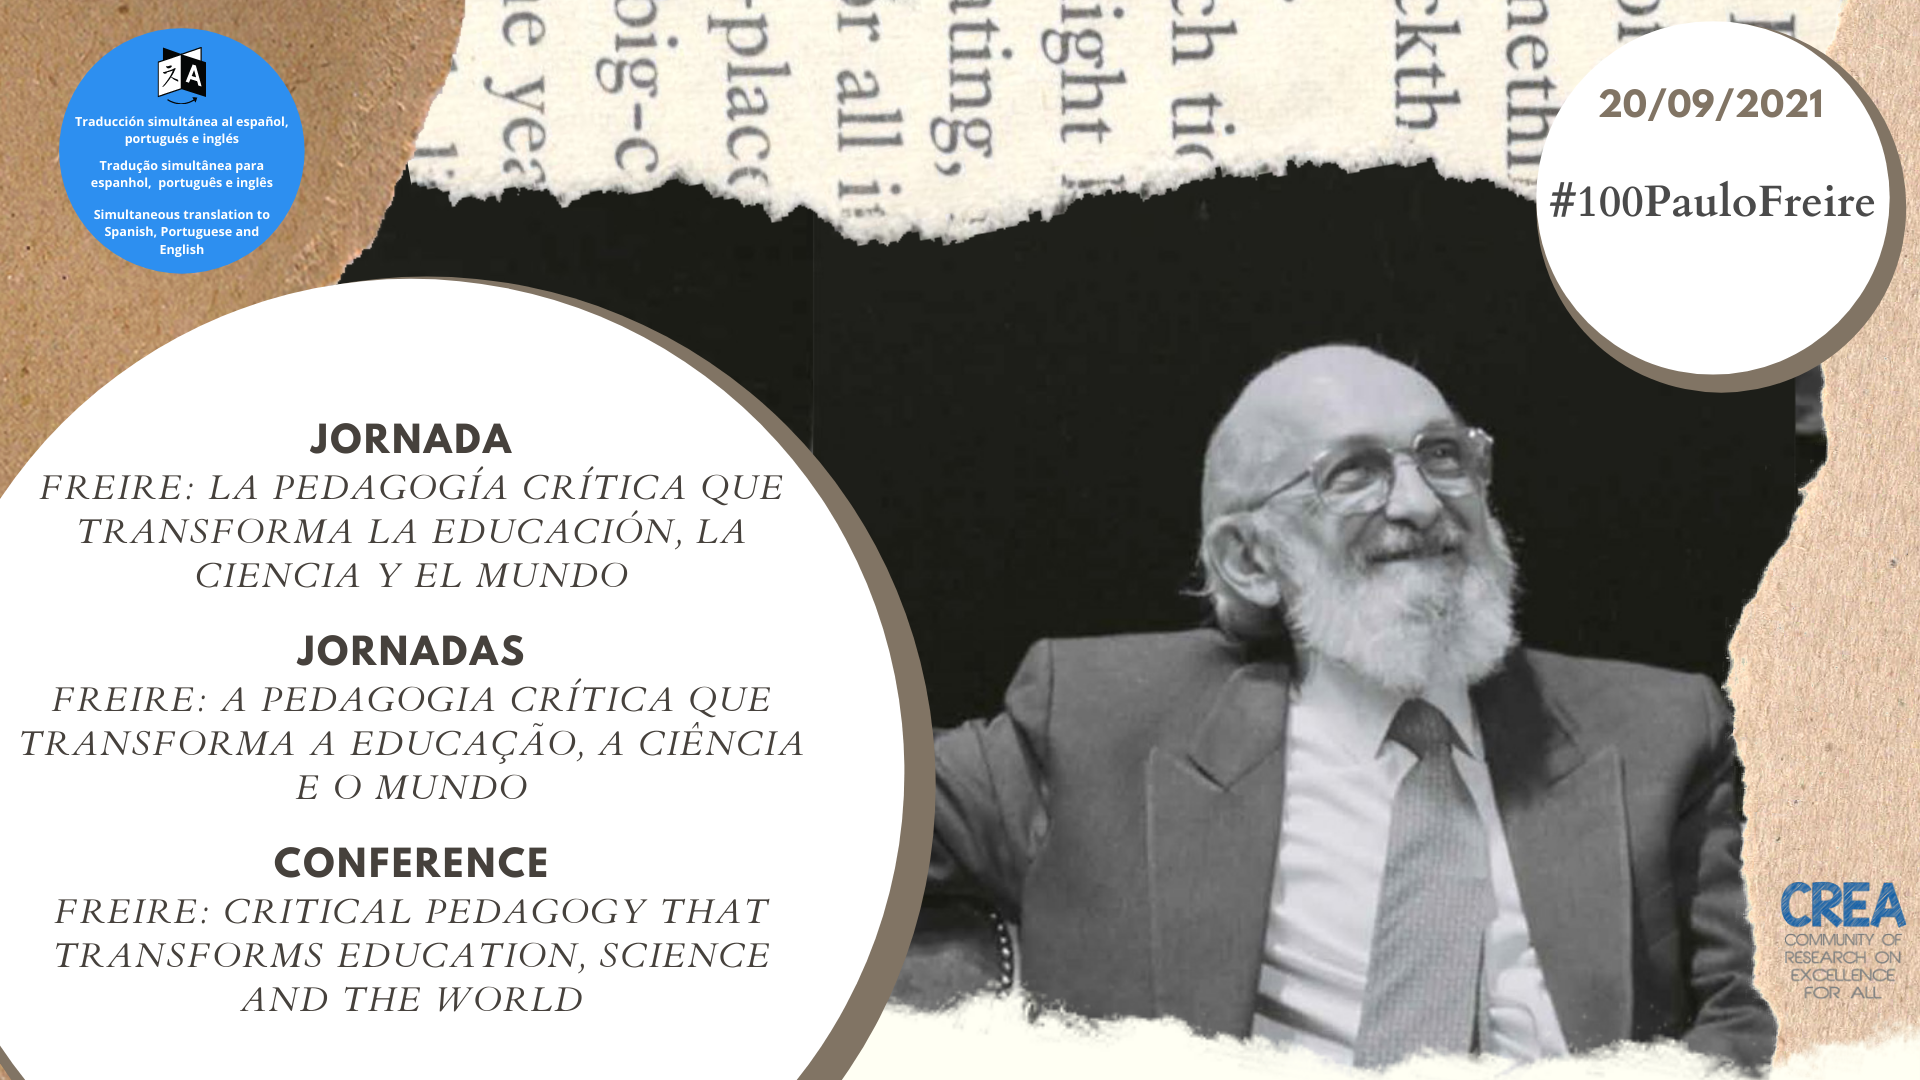 More than 2.300 people from all over the world participate in the main act of tribute to Paulo Freire on his centenary